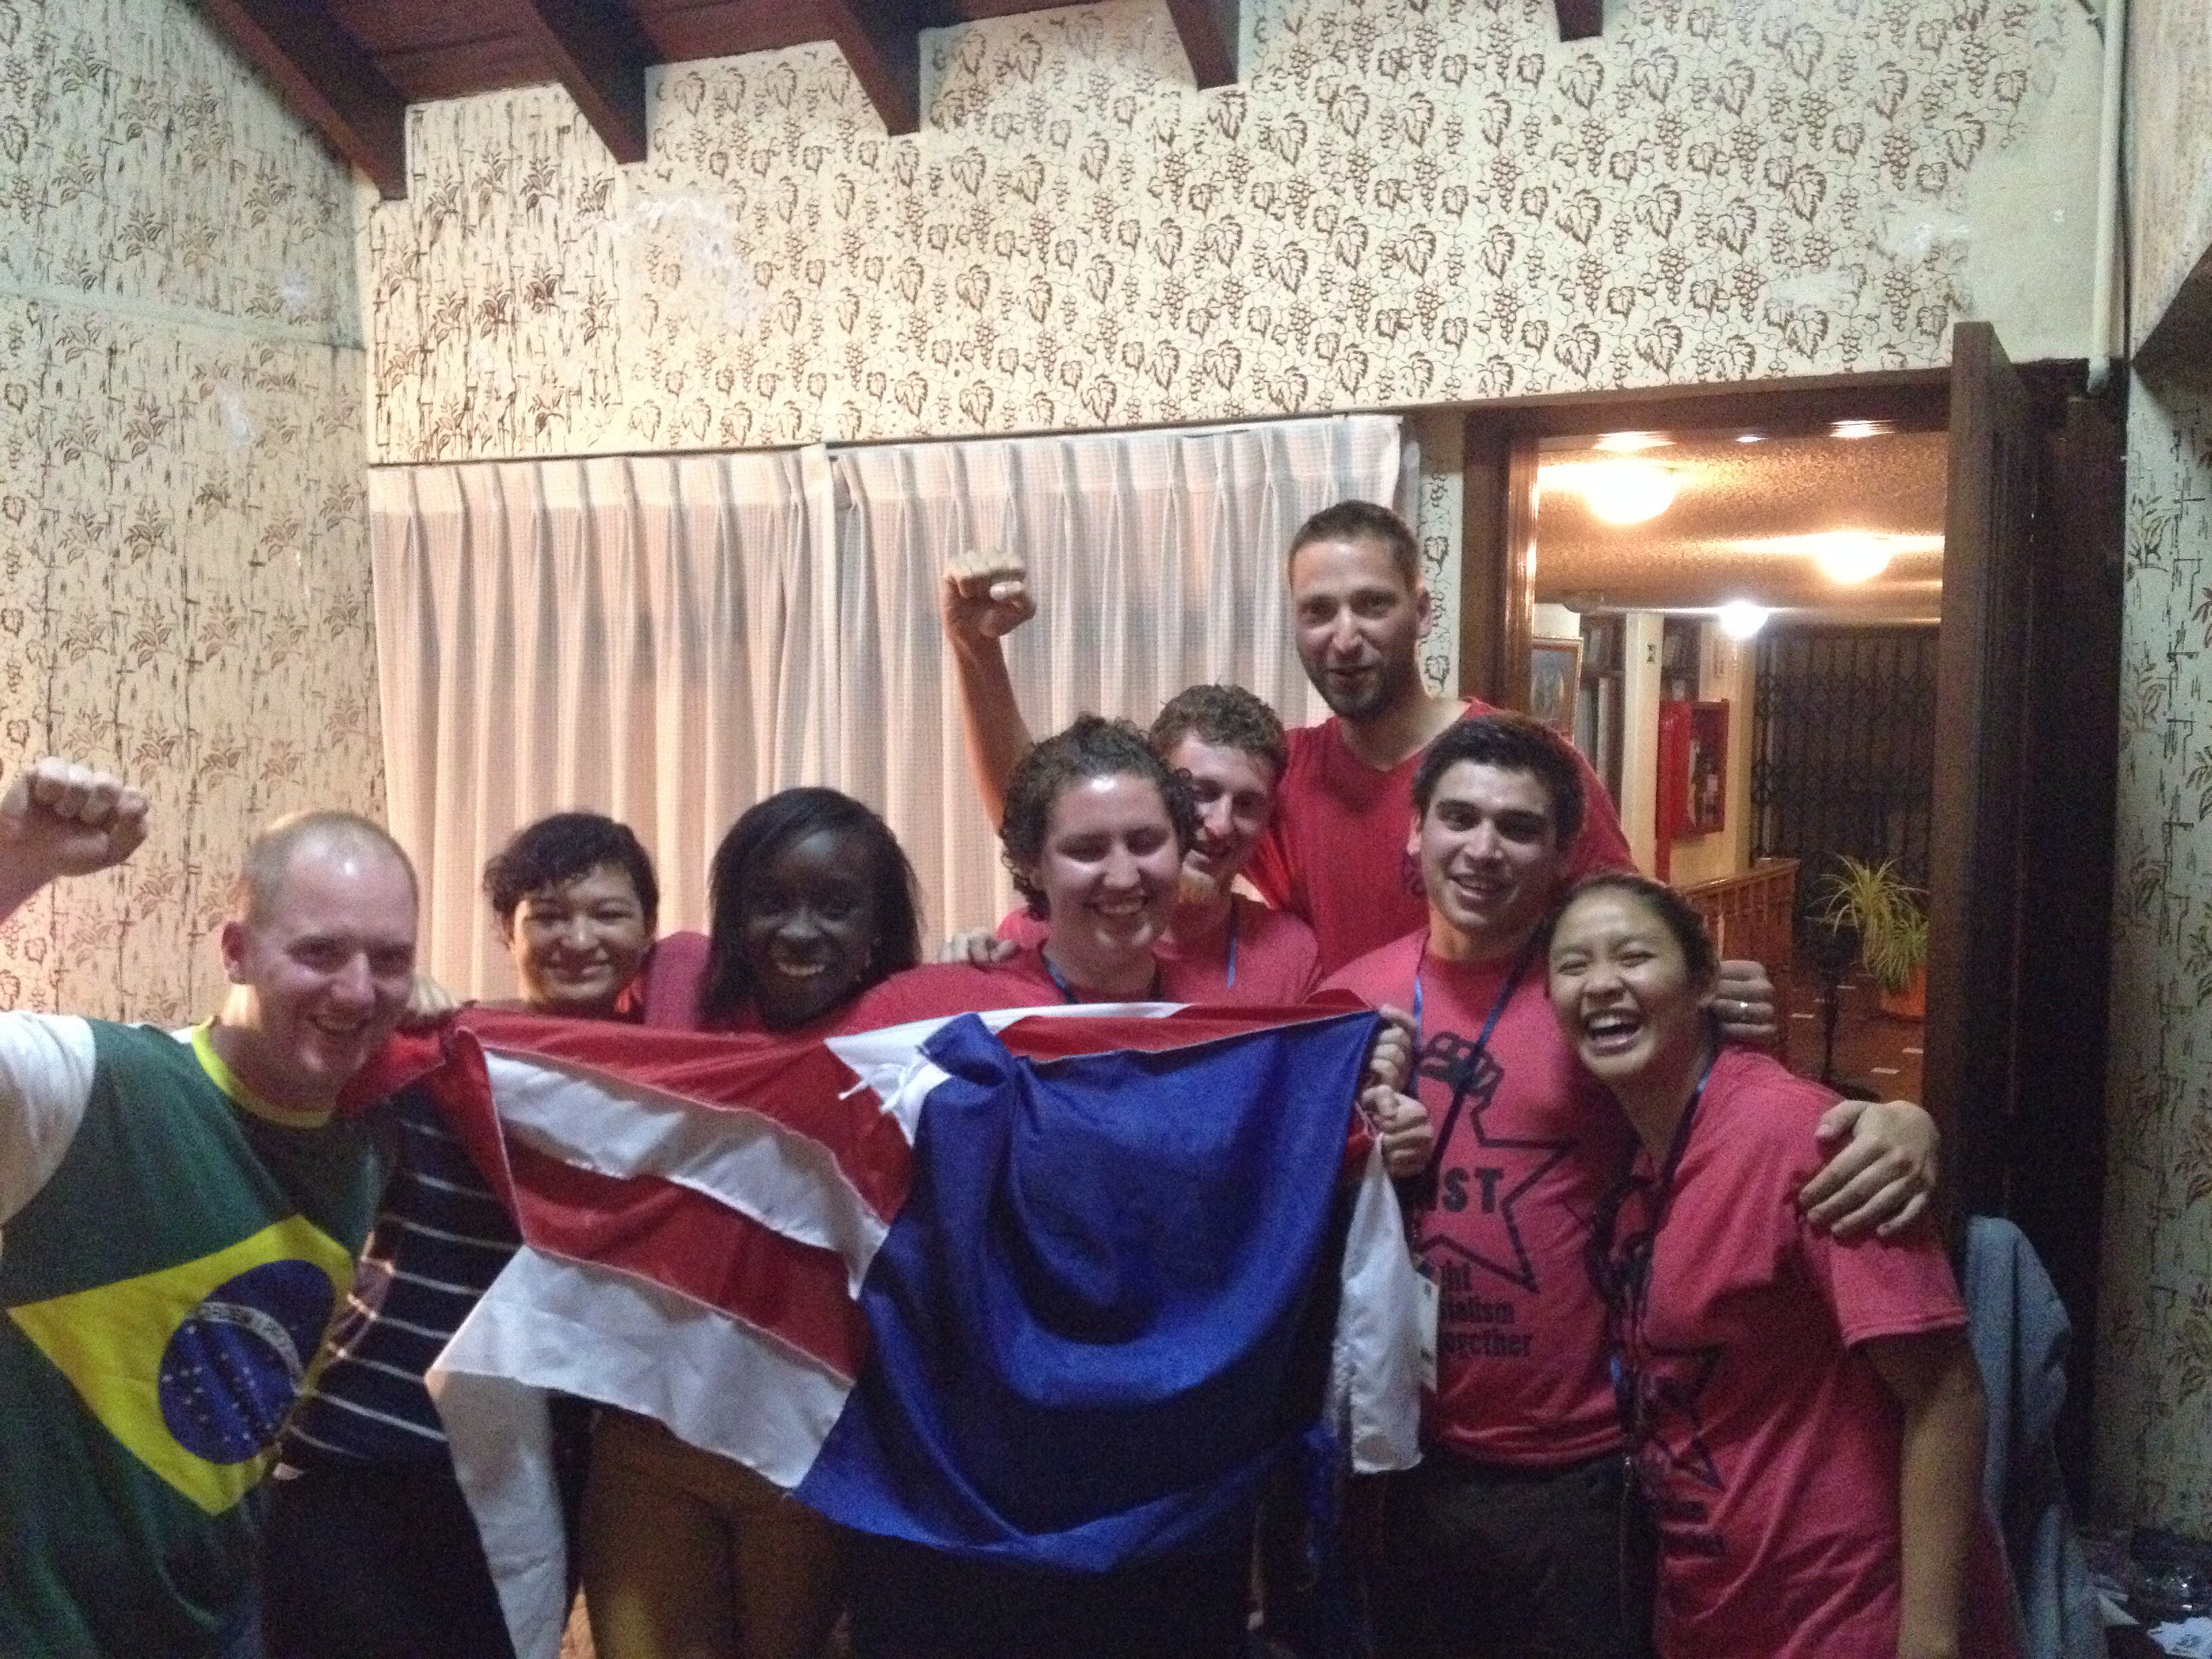 Red Youth and FIST with the remnants of the flag after the days events